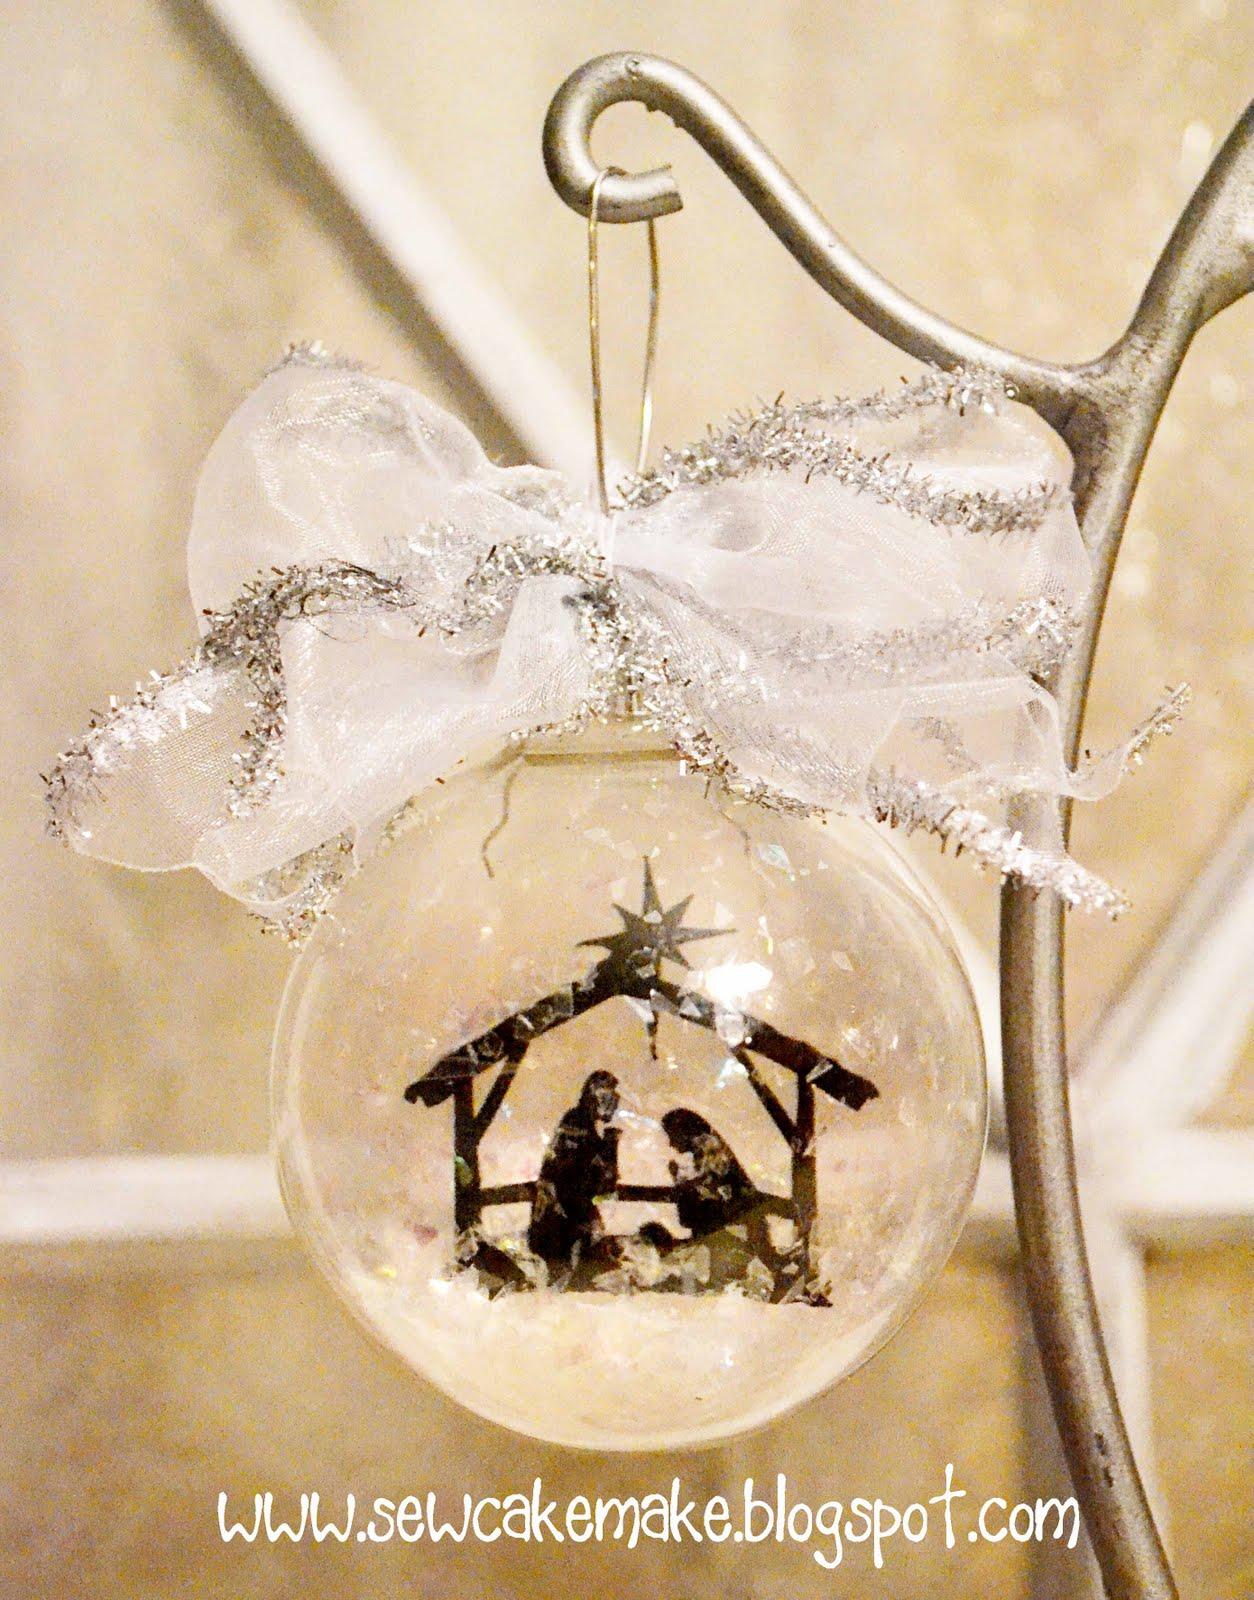 Handmade glass christmas ornaments - Fabulous Glass Ornament 25 Beautiful Handmade Ornaments